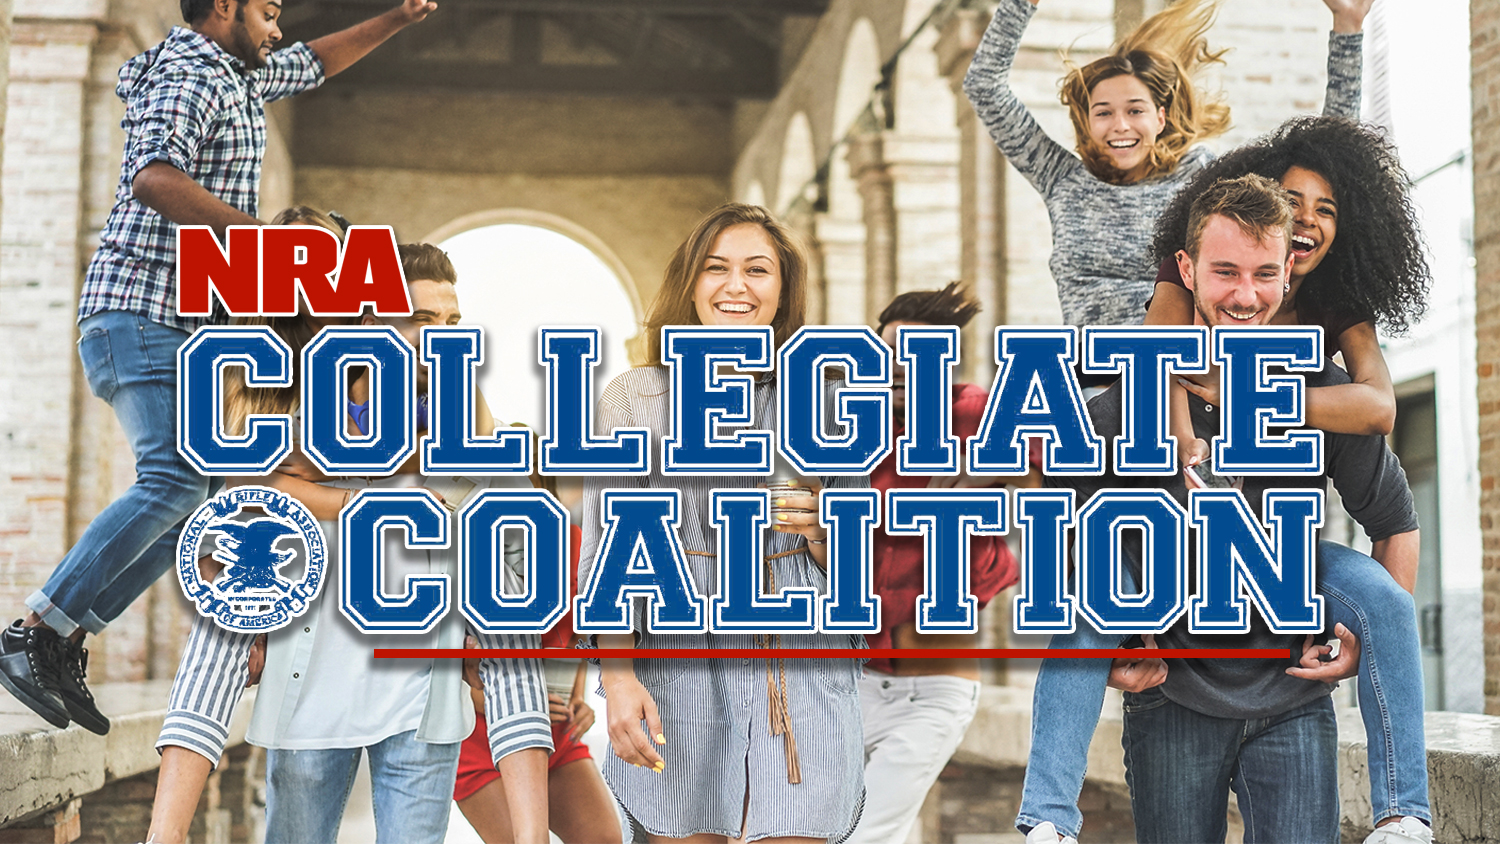 Start an NRA Collegiate Coalition